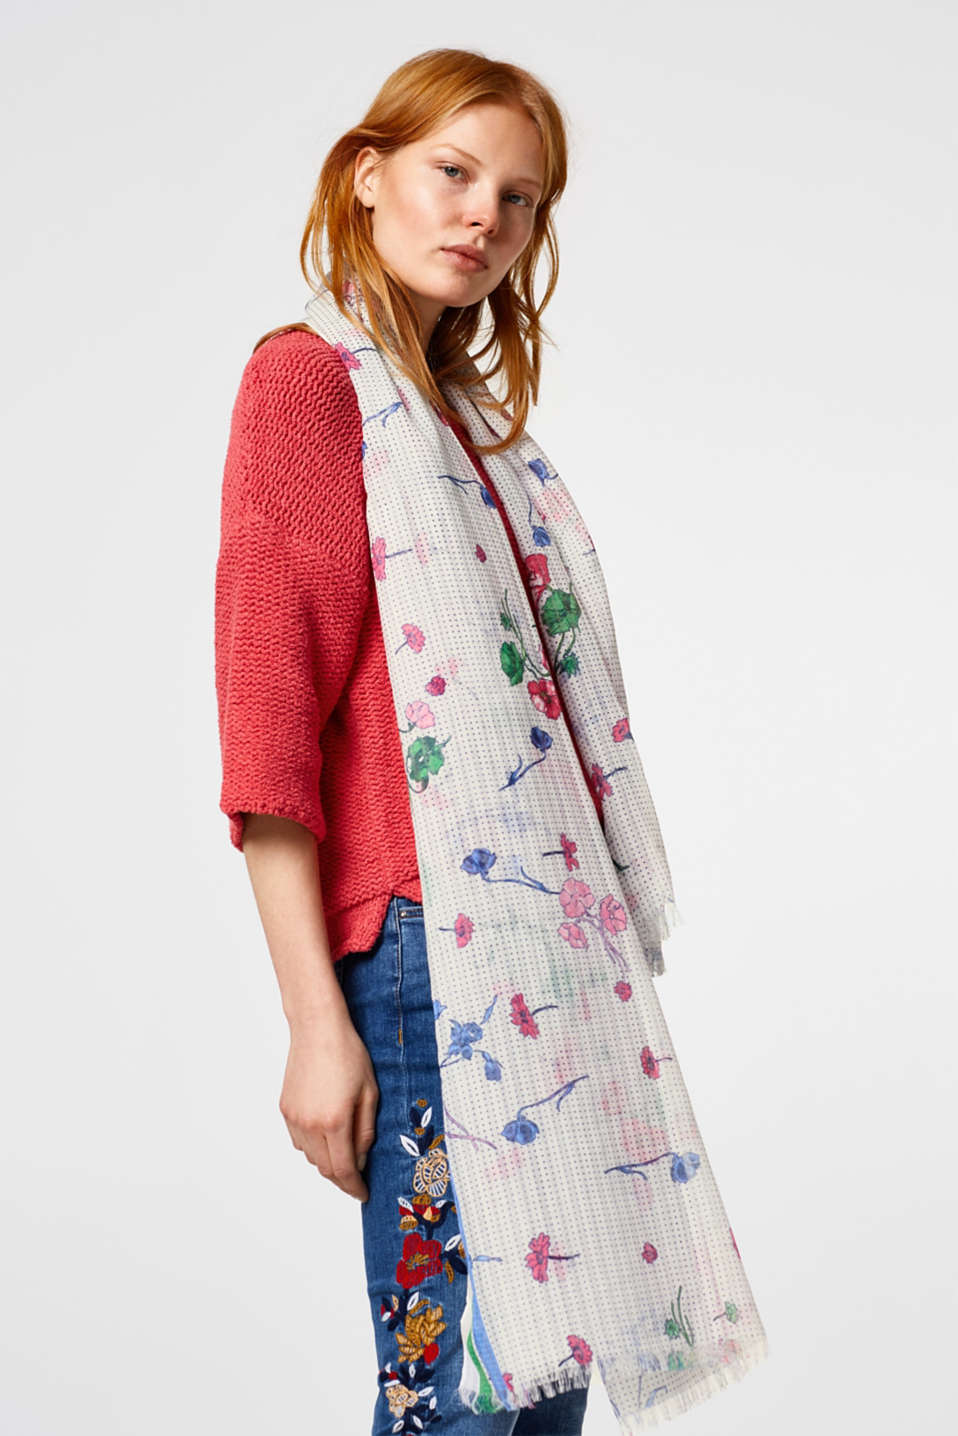 Flowing scarf with a floral + polka dot print